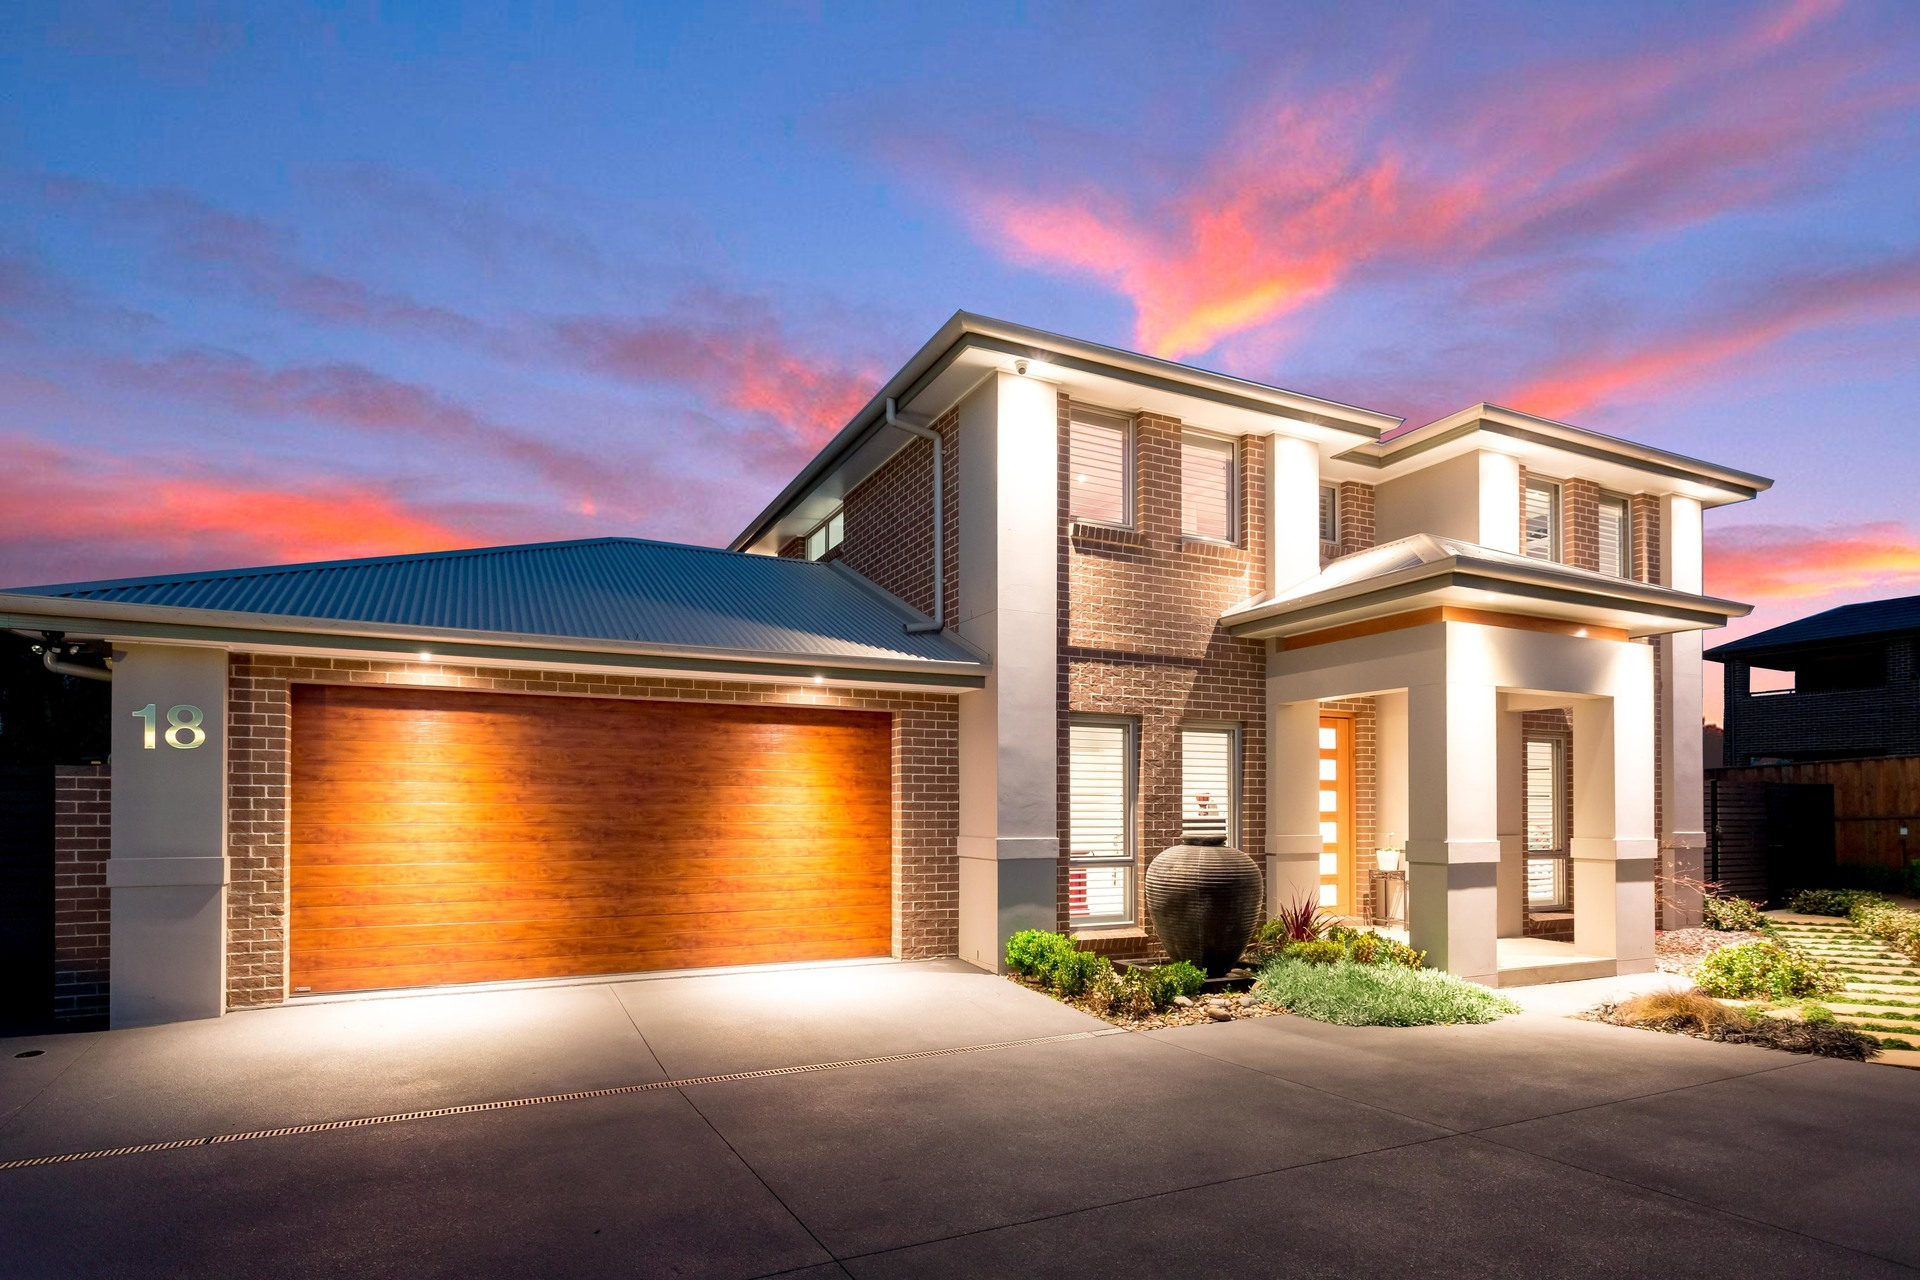 Colebee 18 Stonecutters Drive | Stonecutters Ridge